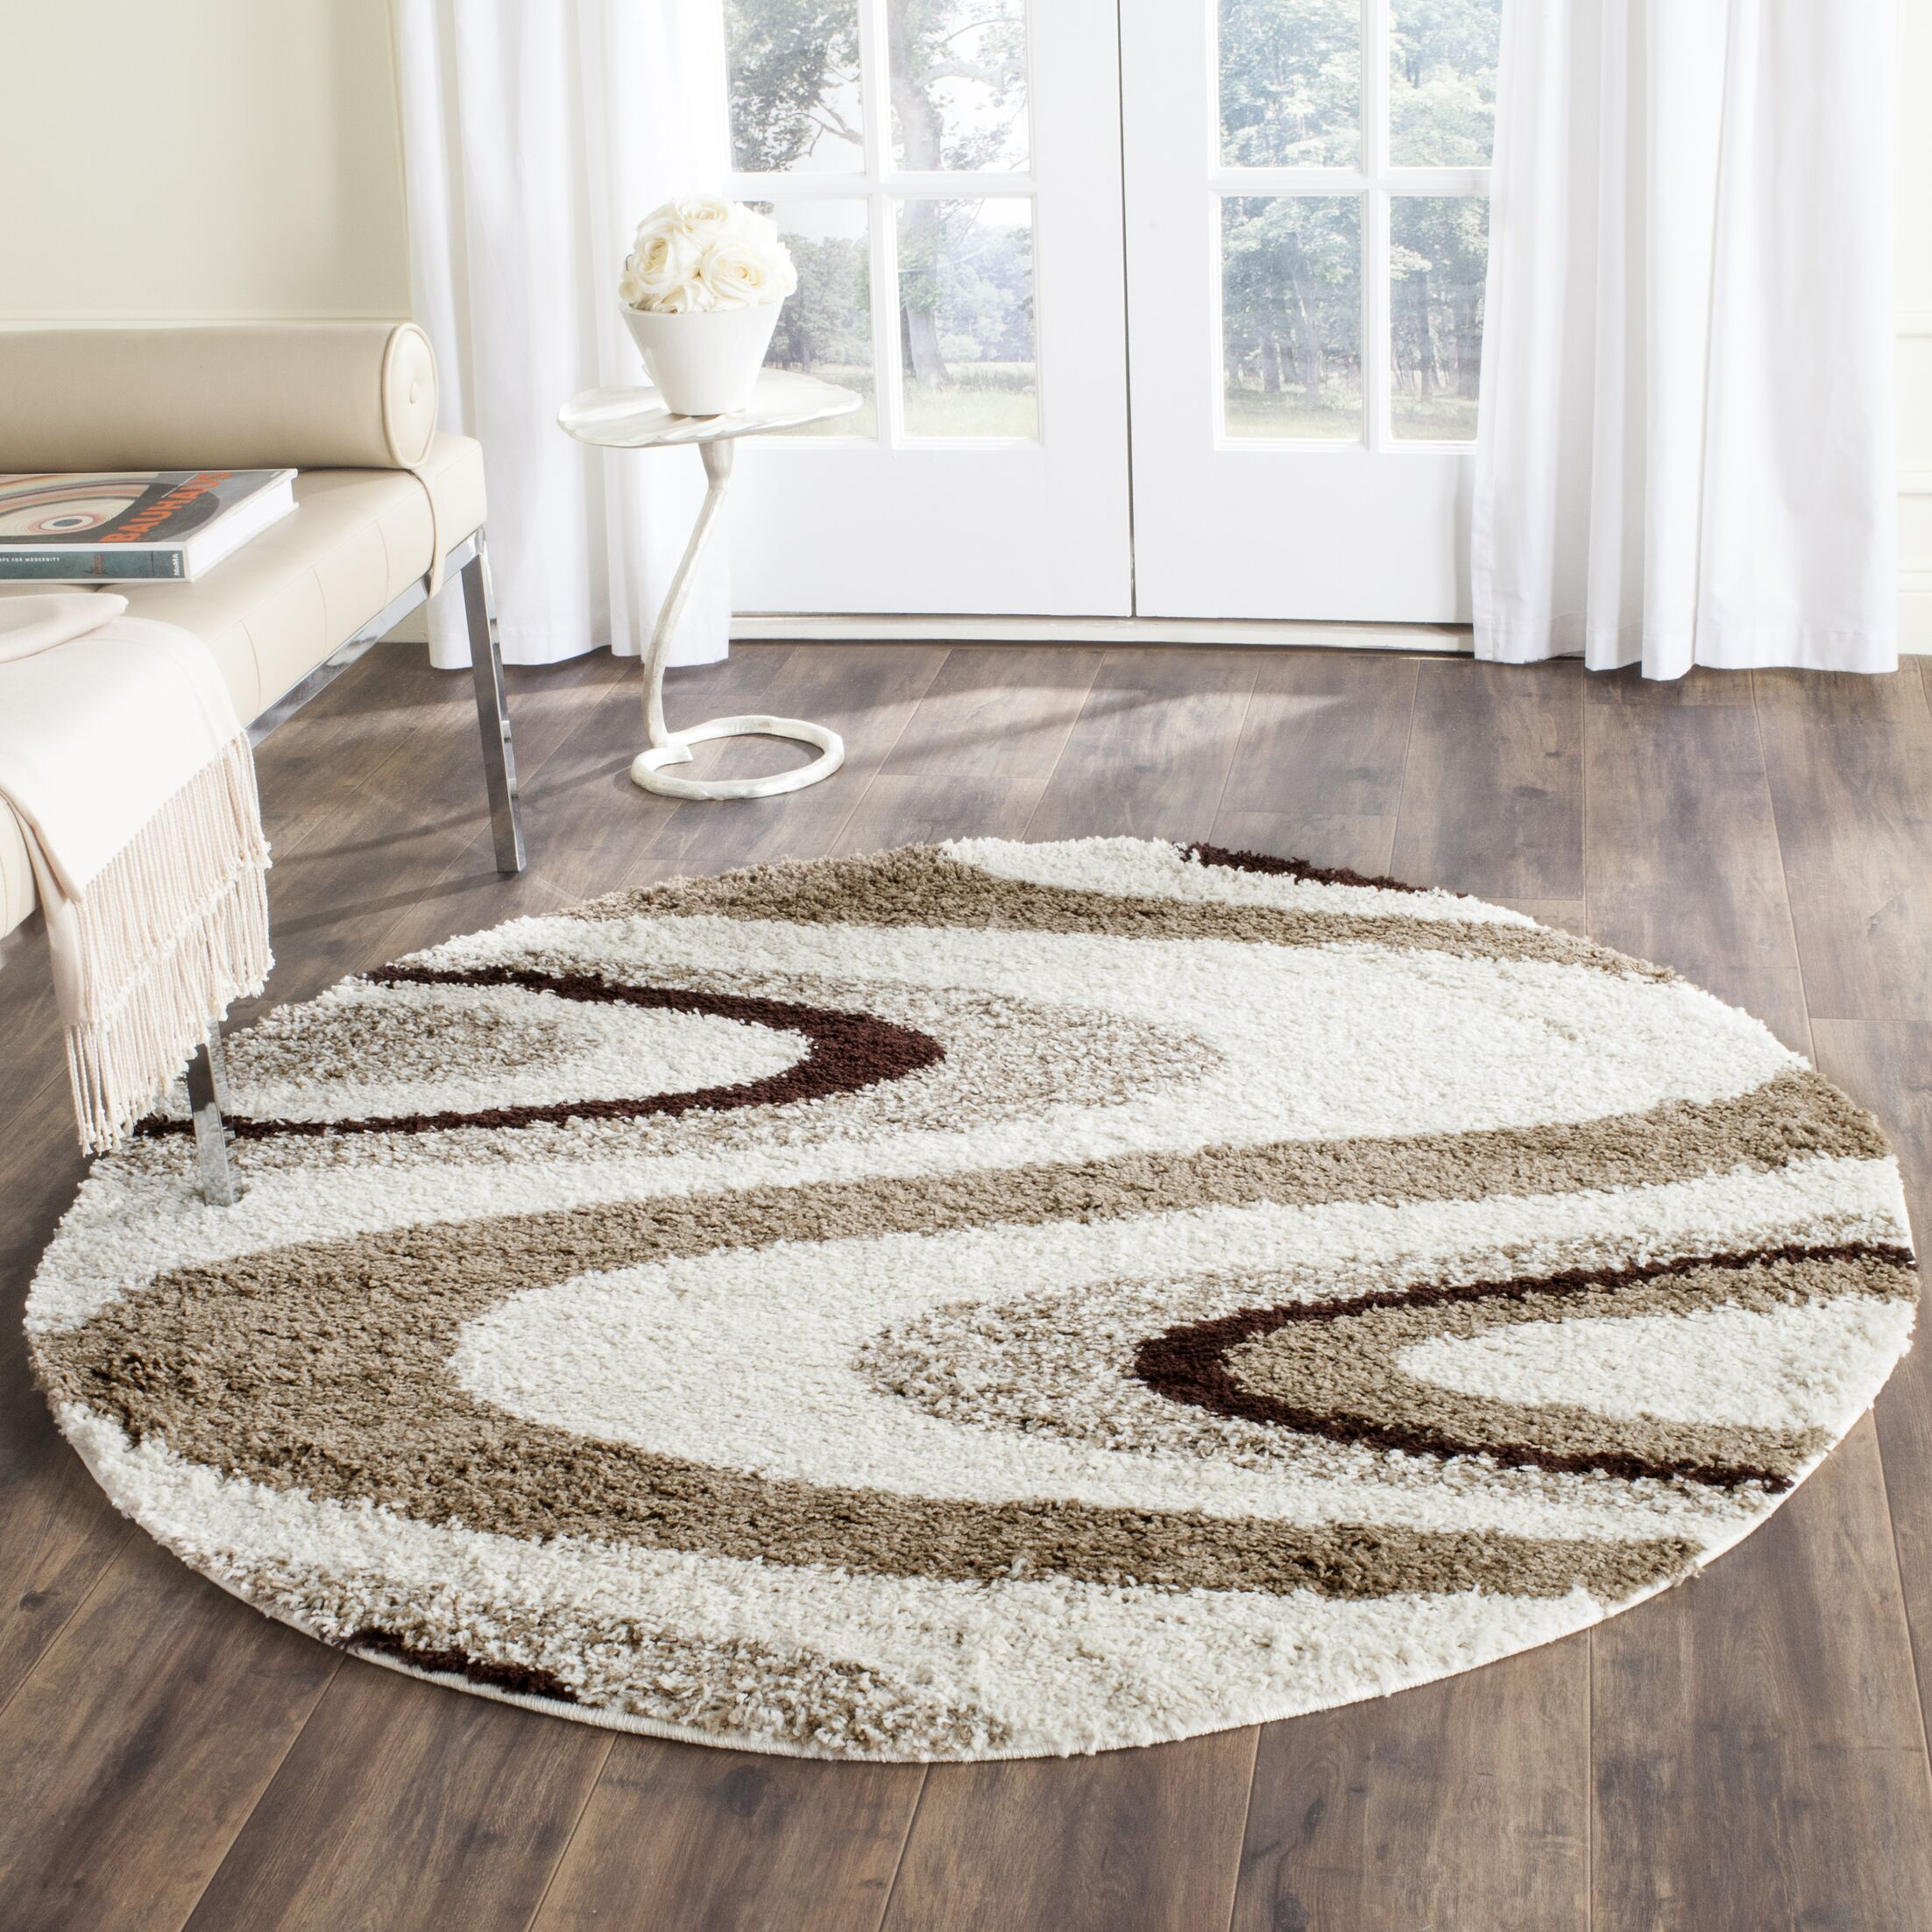 Driffield Ivory/Brown Shag Area Rug Rug Size: Round 5'